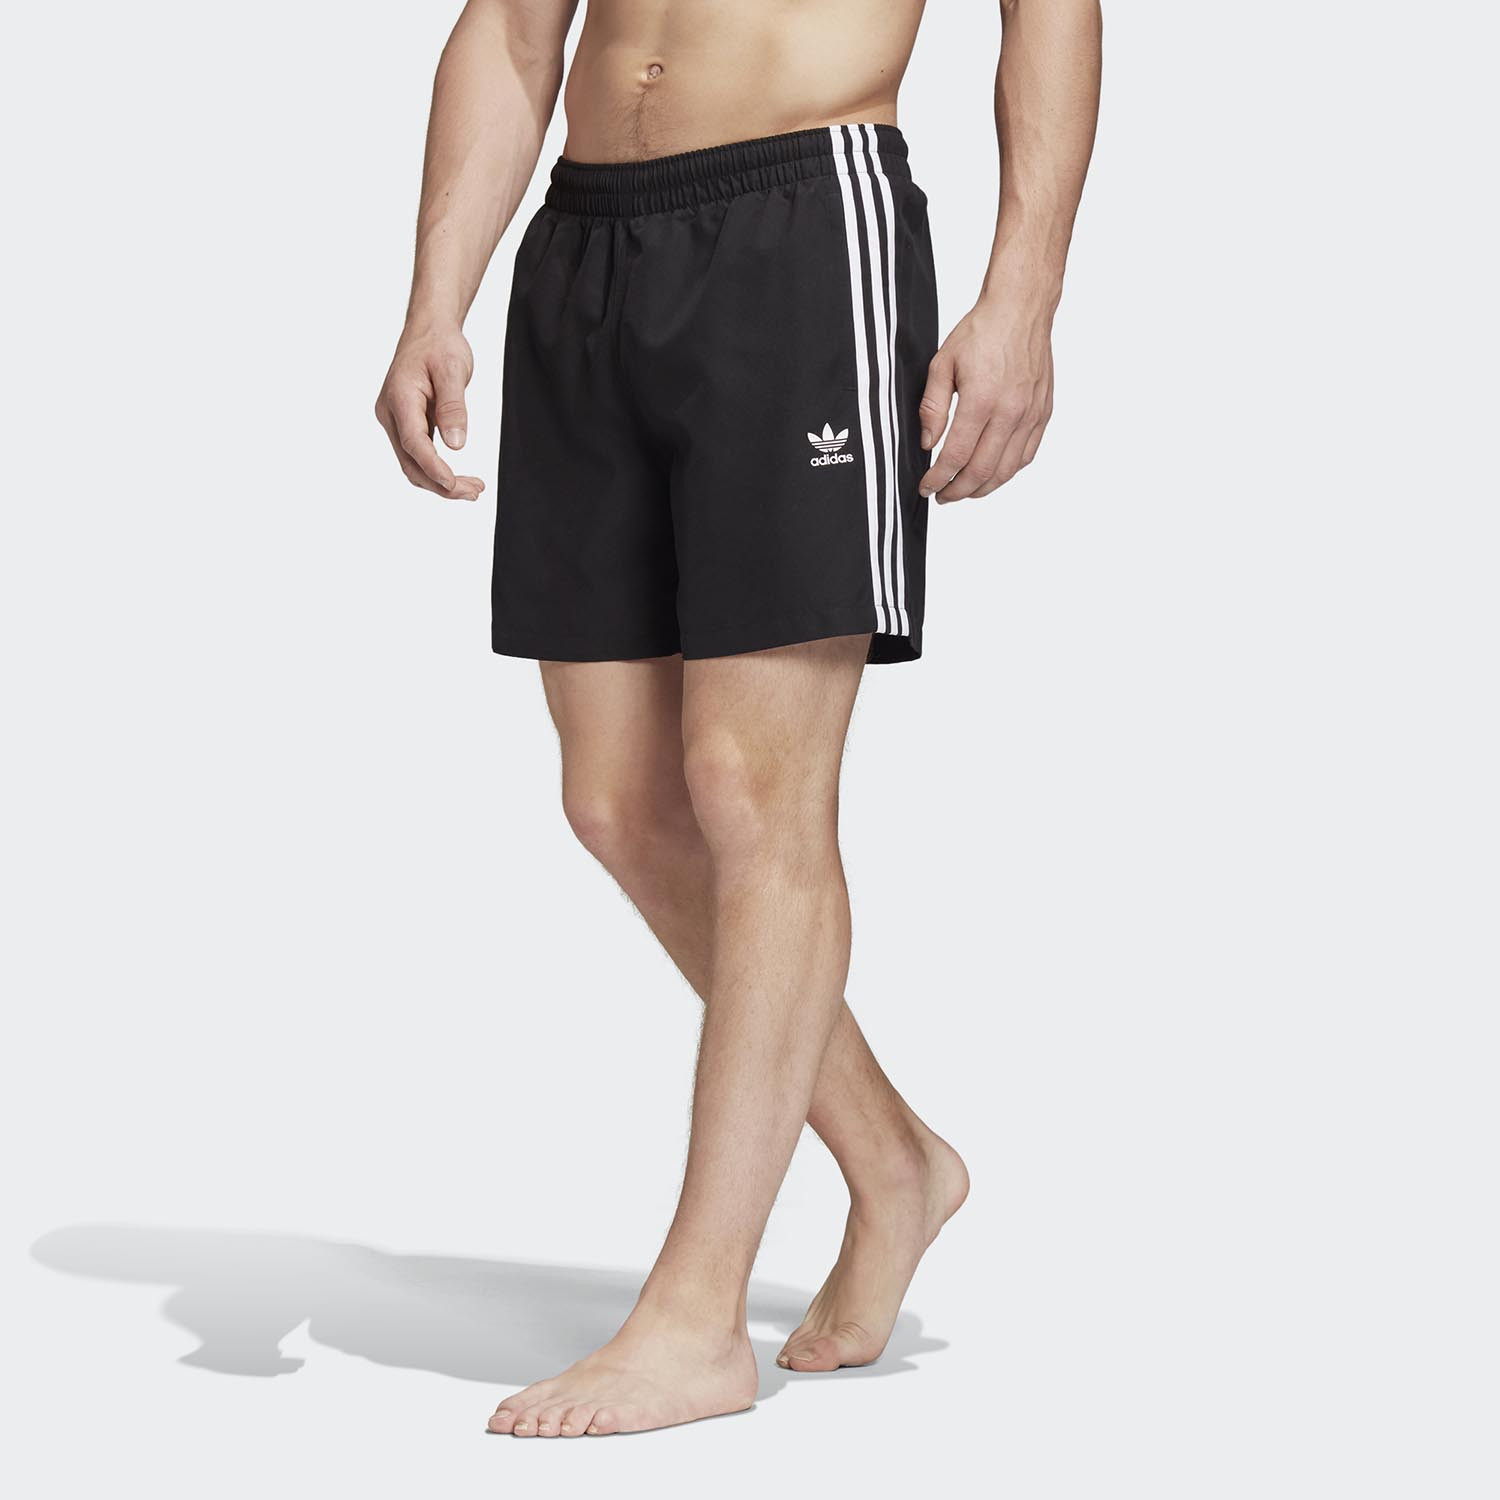 adidas Originals Men'S 3-Stripes Swim Shorts (9000045722_1469)